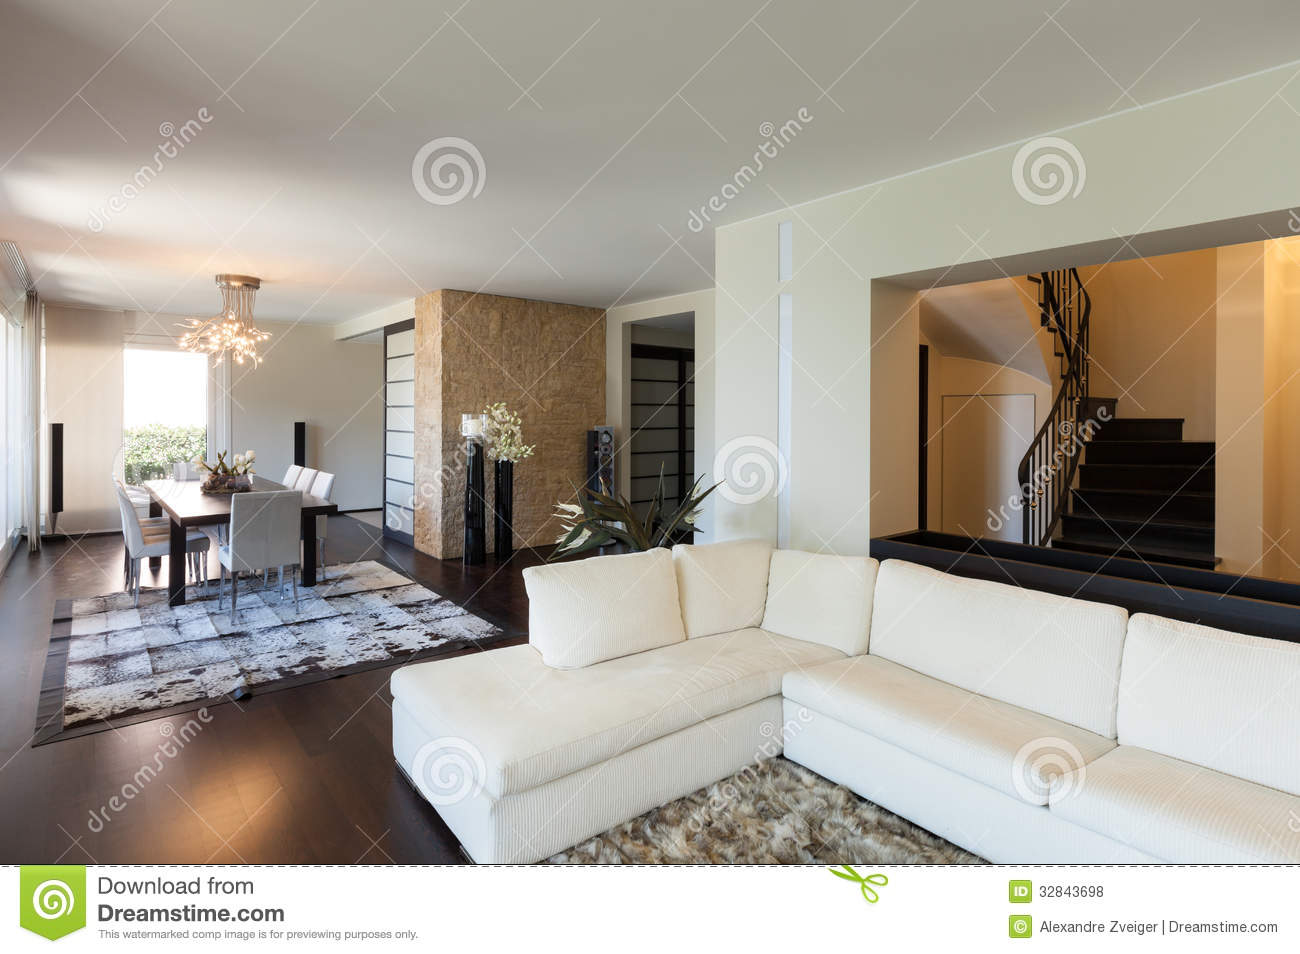 Interior luxury apartment beautiful living room